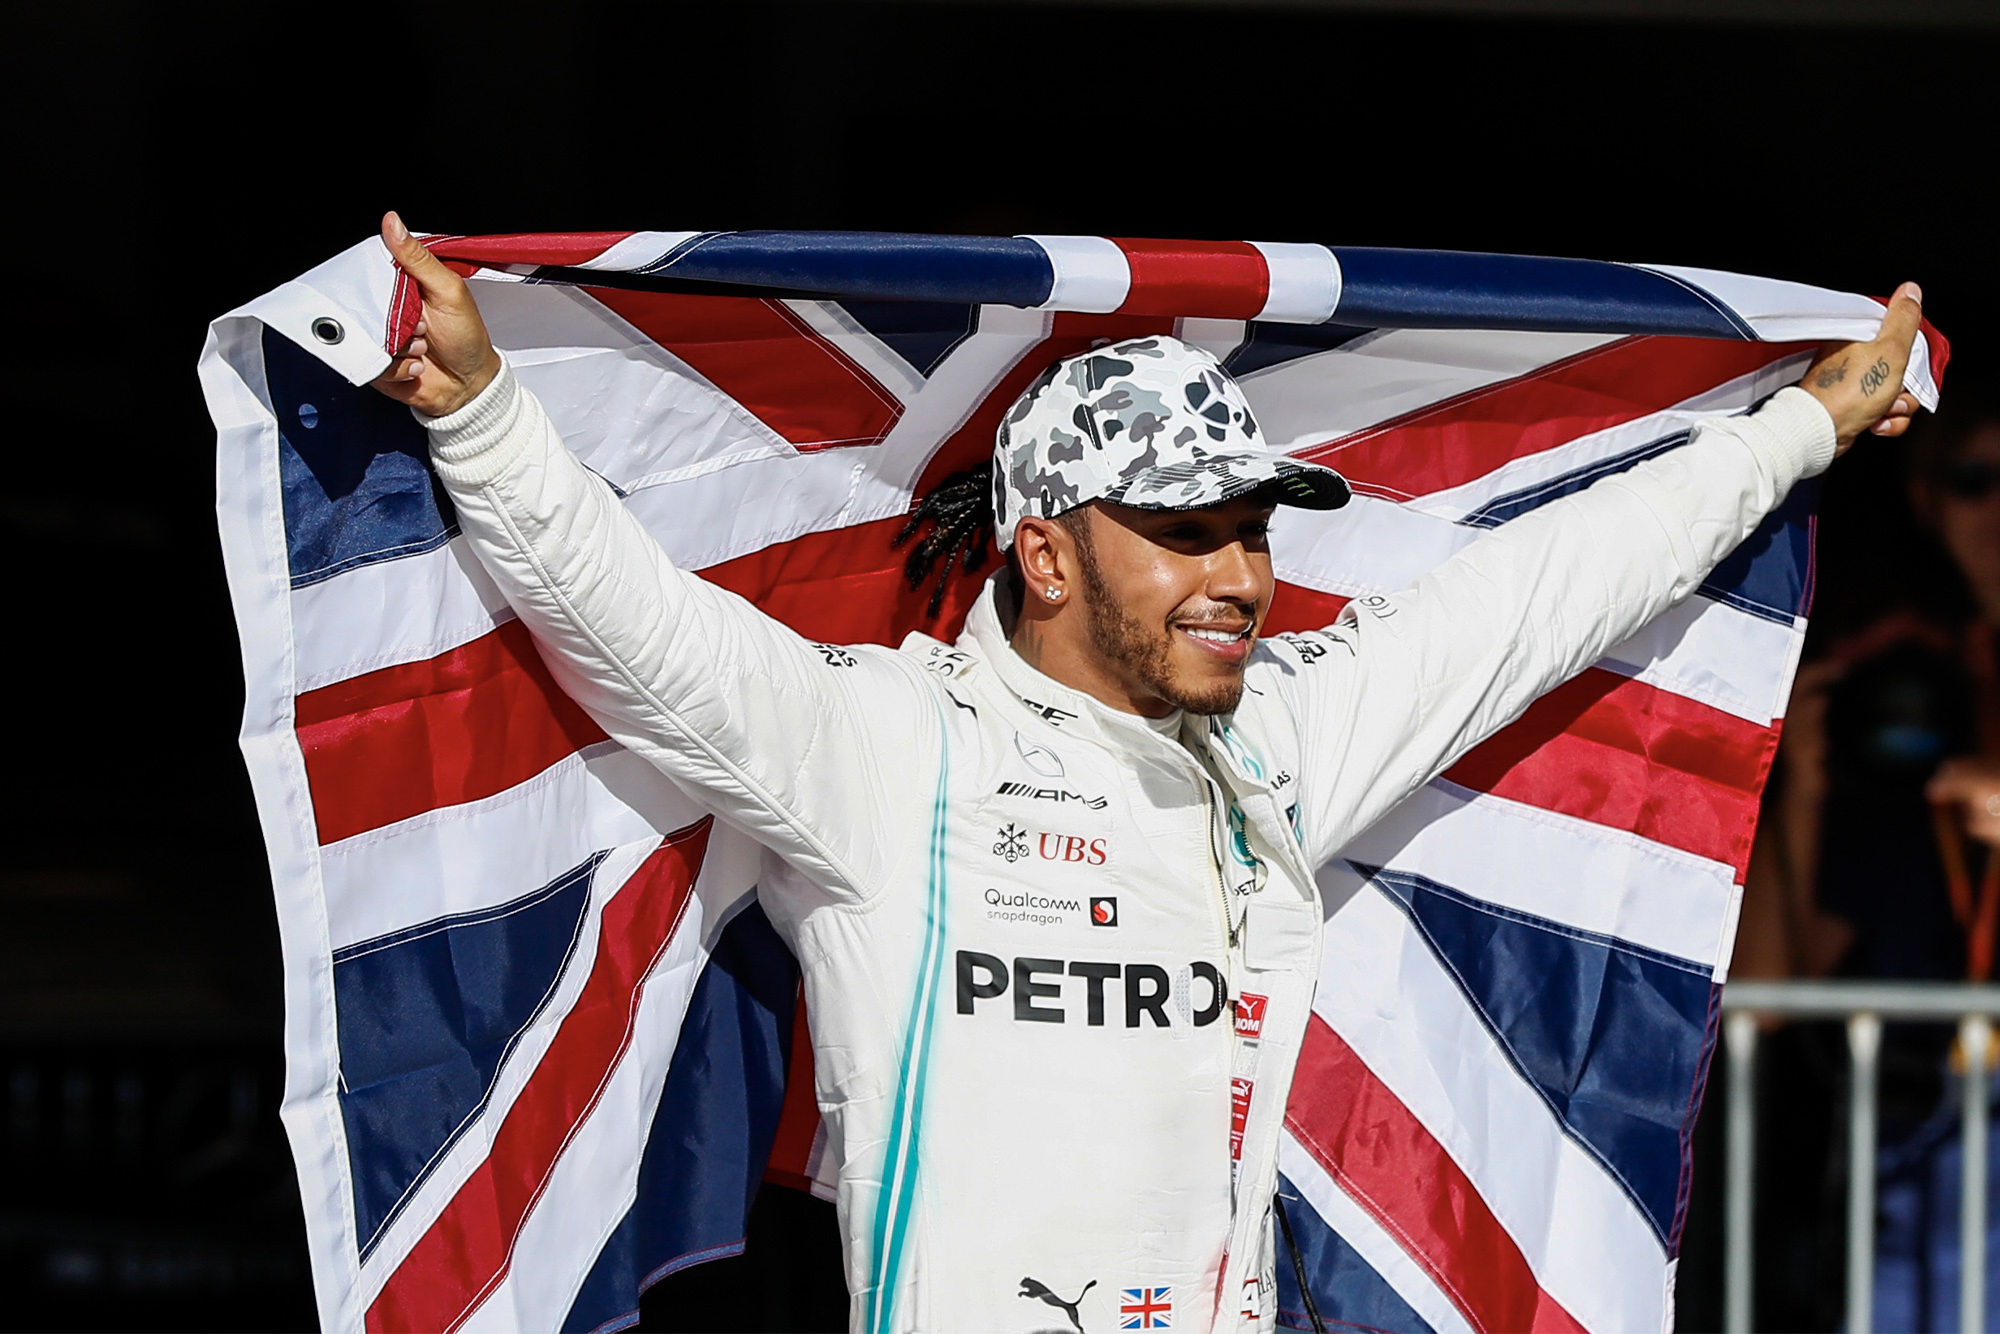 Lewis Hamilton's 2019 championship race by race: how he won his sixth F1 title